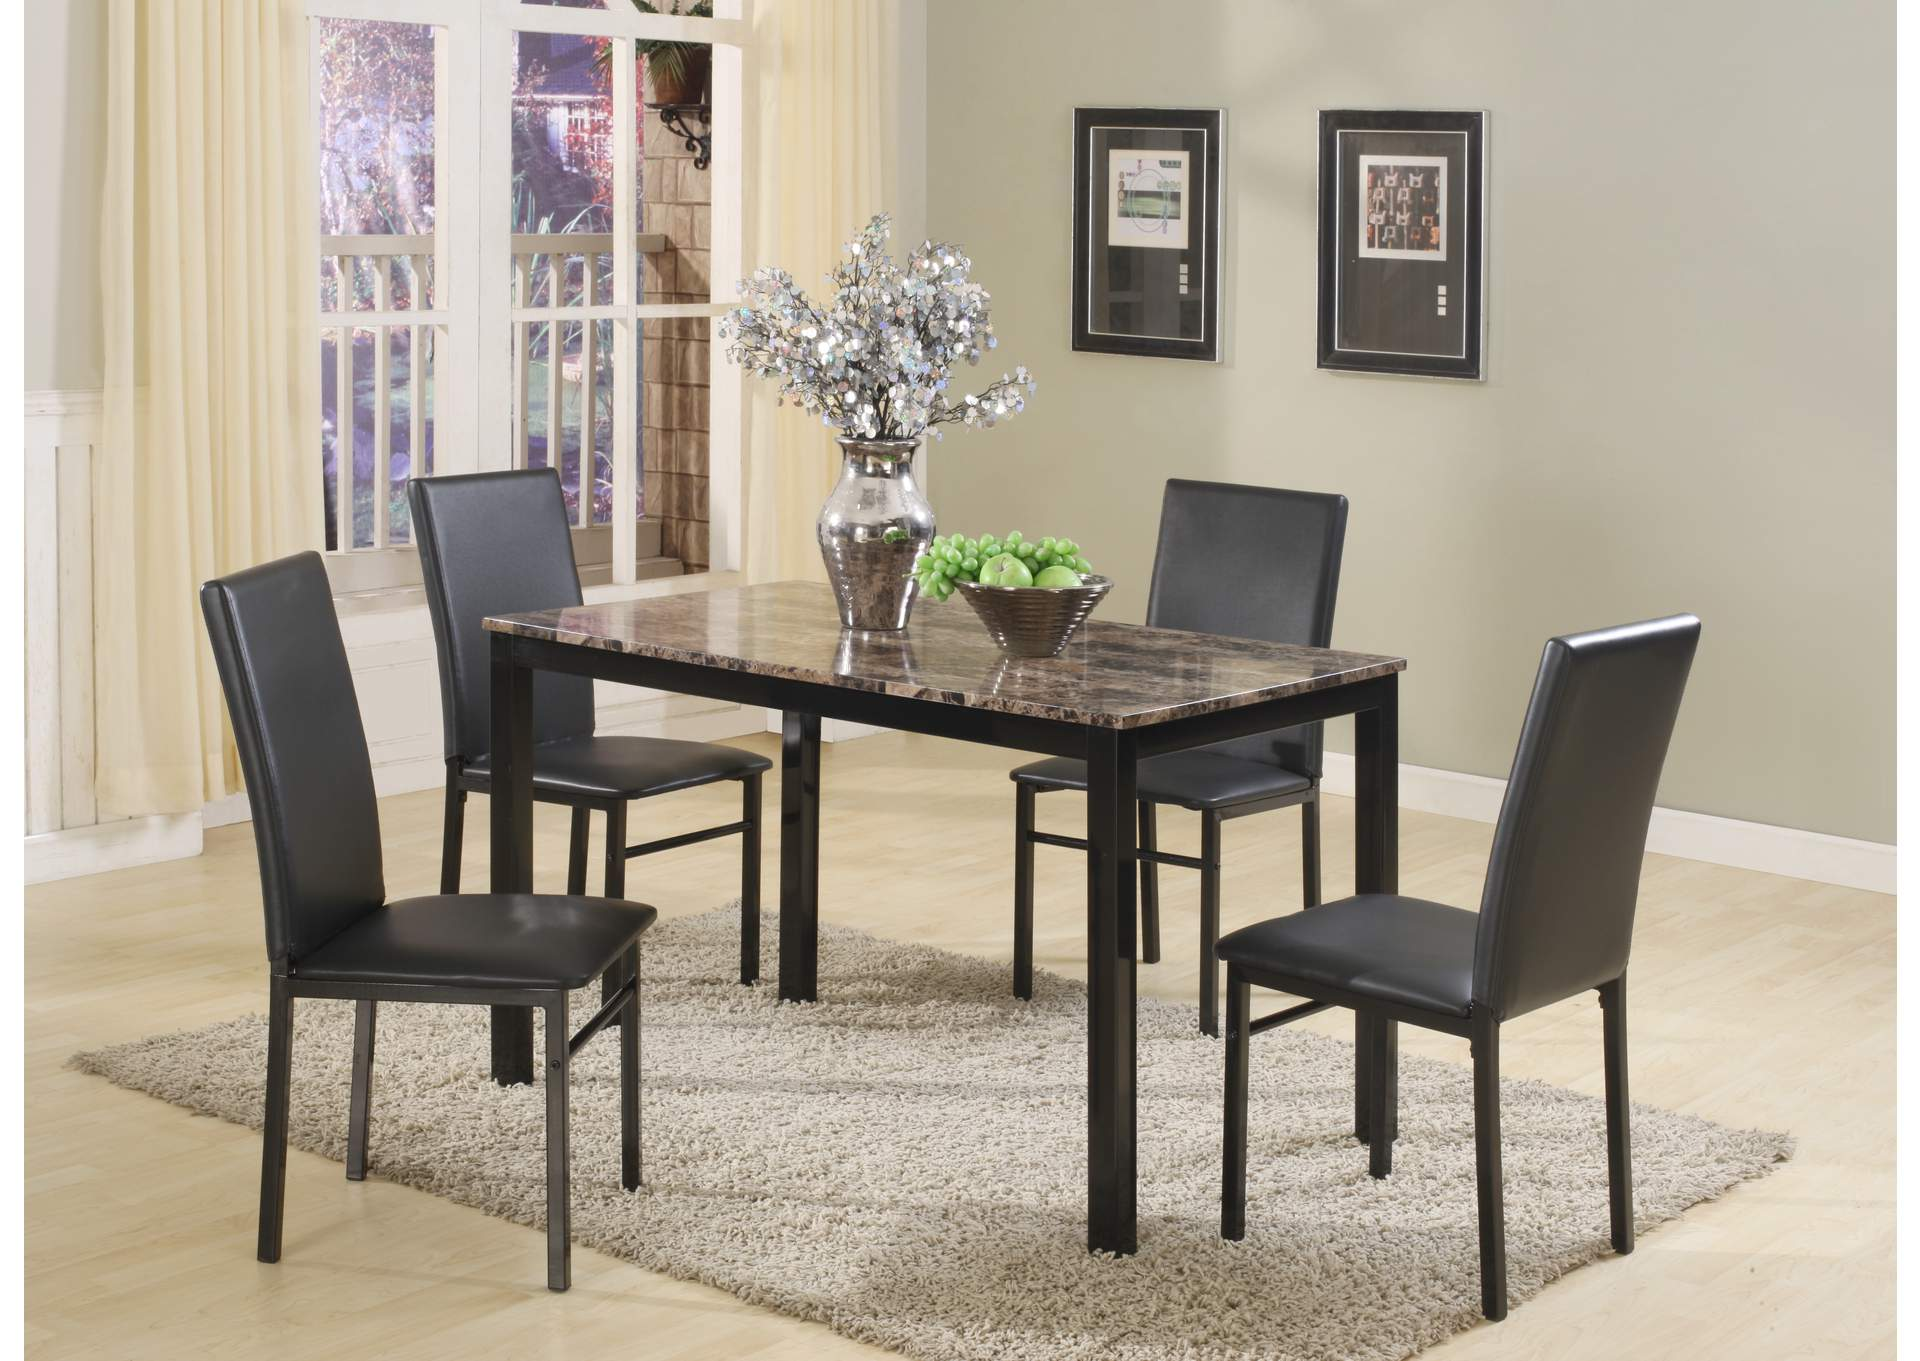 Black Marble Dinette W/ 4 Chairs,Global Trading